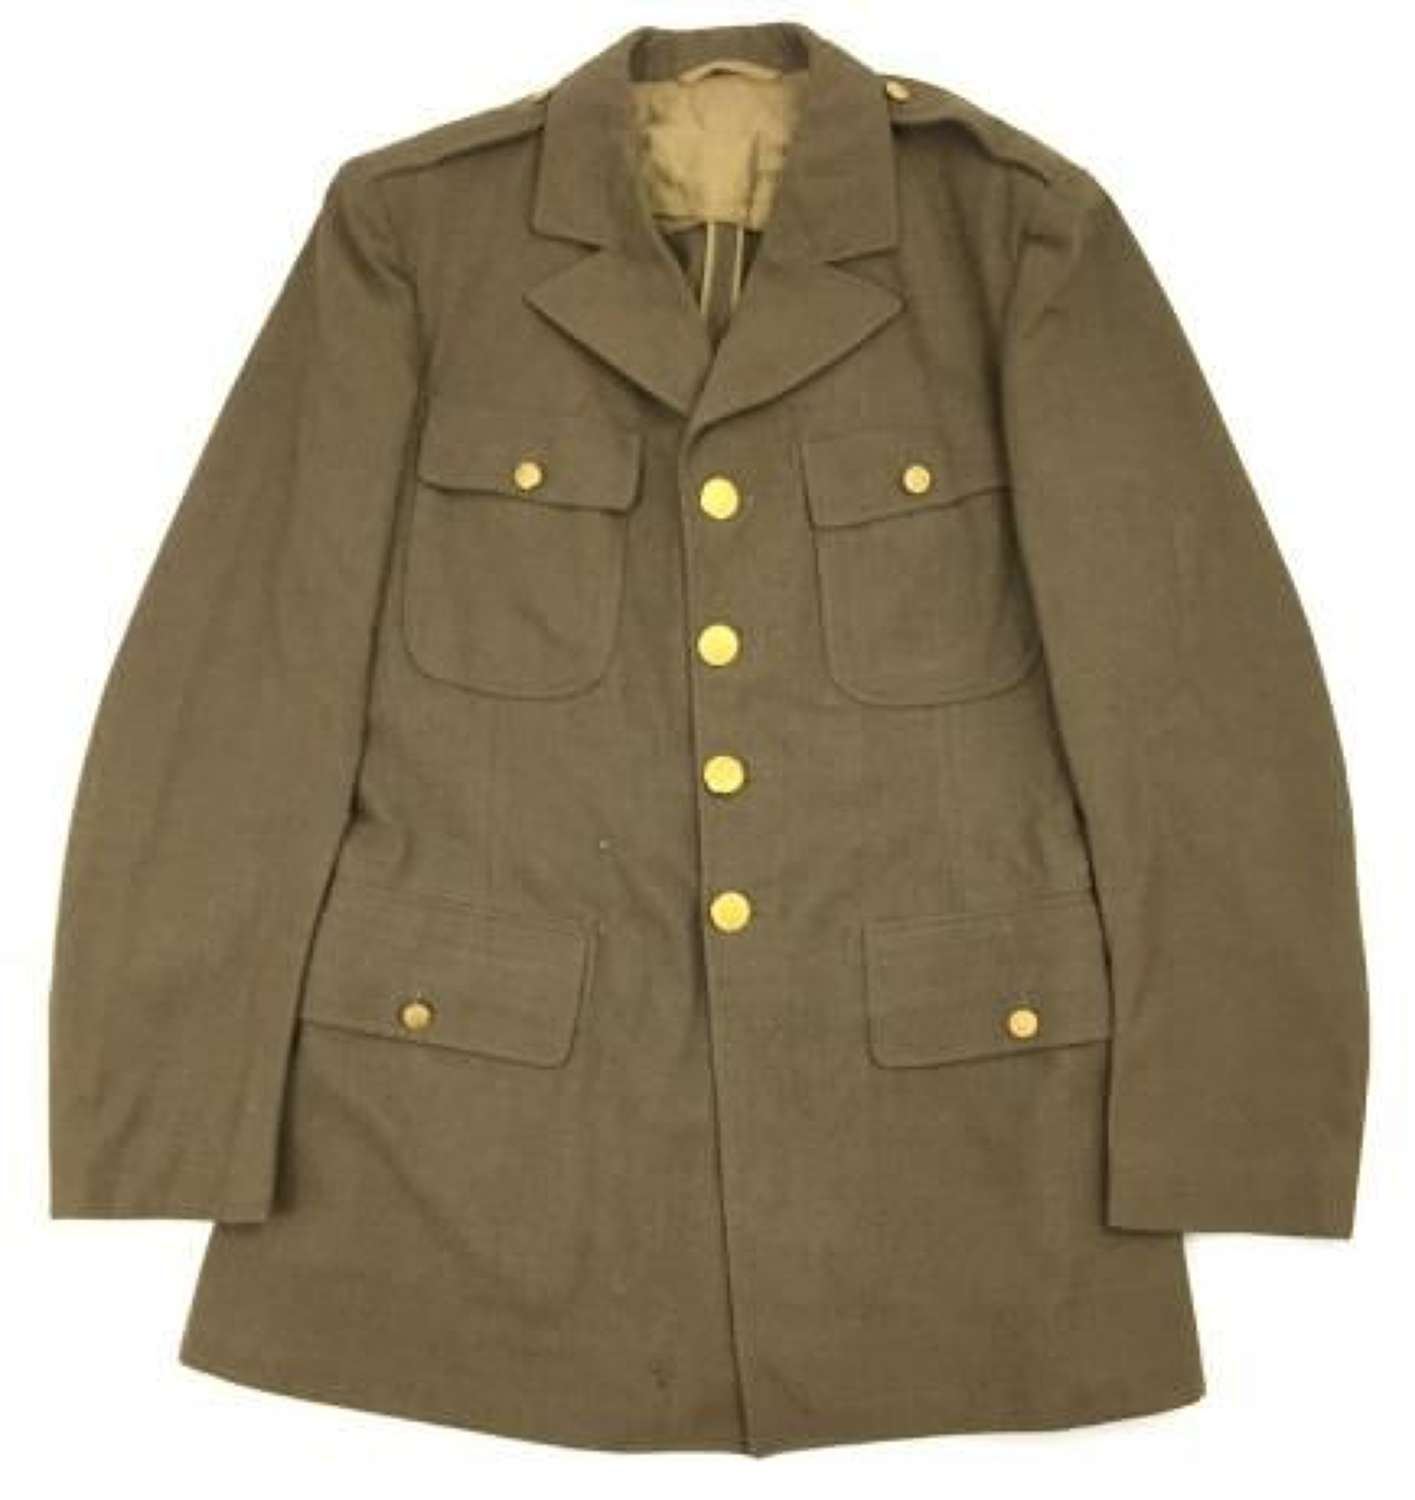 1942 Dated US Enlisted Men's Tunic - Size 39 L